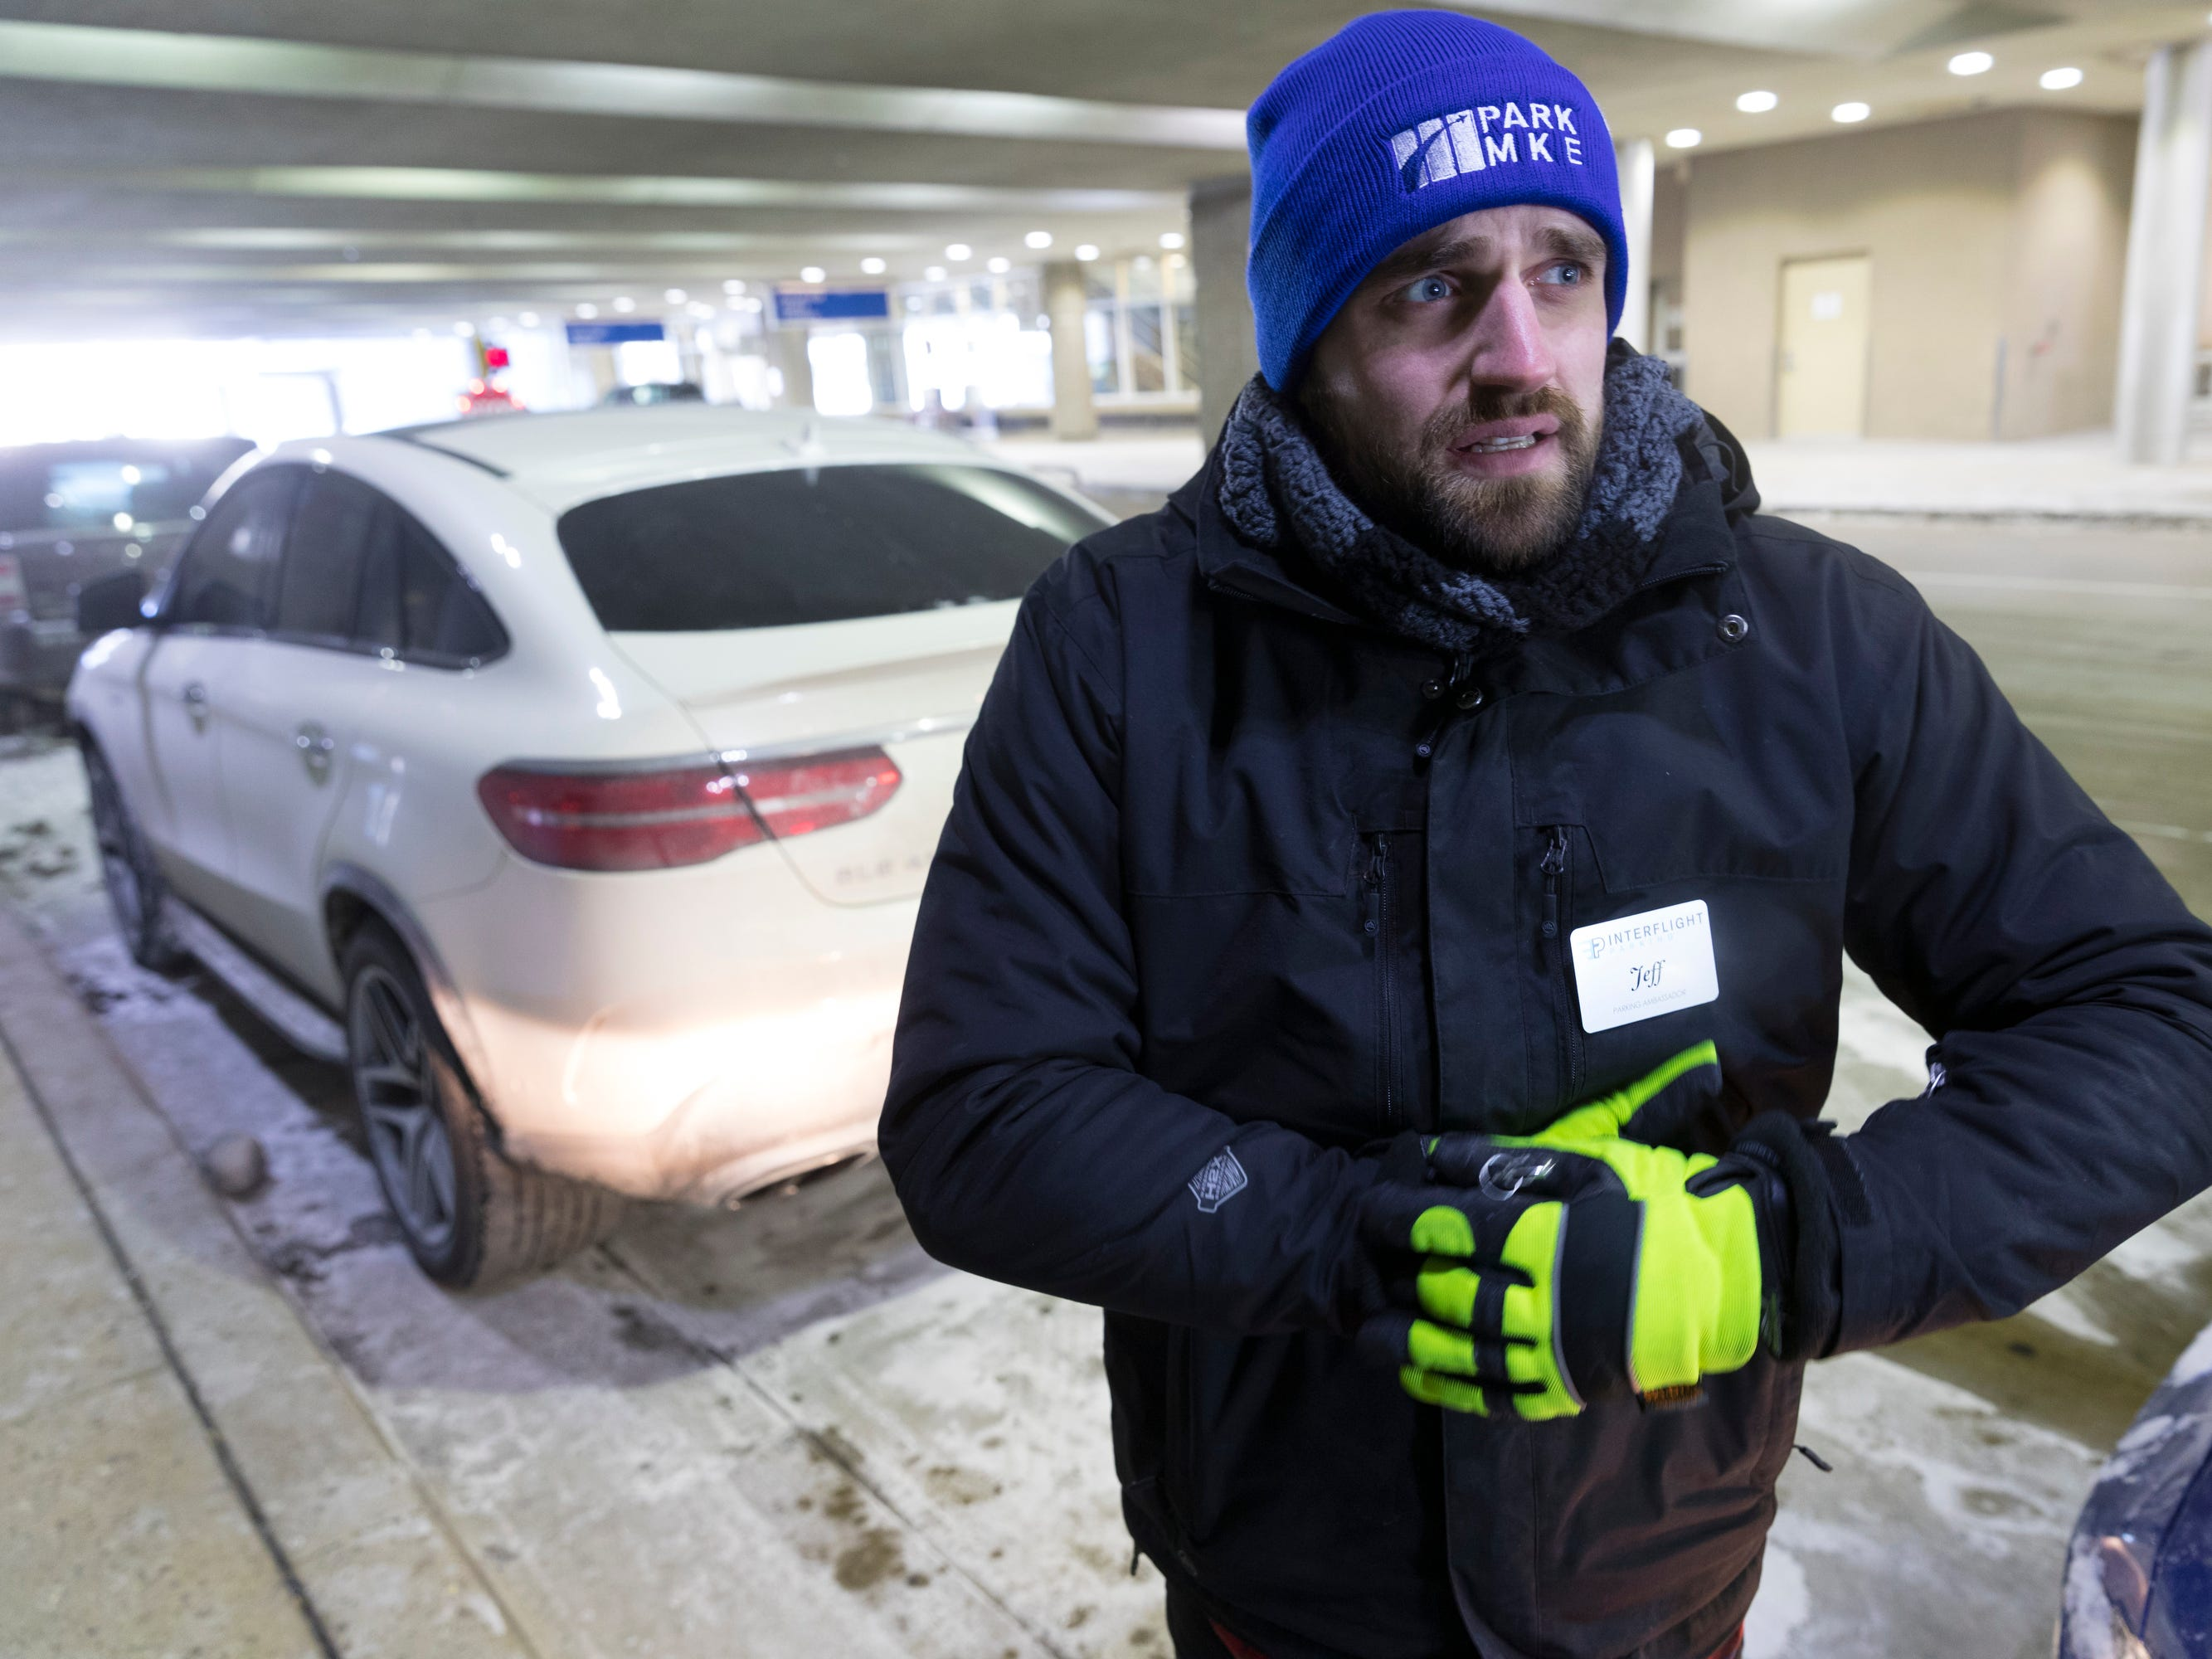 Jeff Plewa, an employee of Interflight Parking, works at the valet parking drop-off/pickup location at Mitchell Airport in Milwaukee. Besides parking and retrieving customers' cars, he also jump-starts cars in the airport ramp and parking lots.